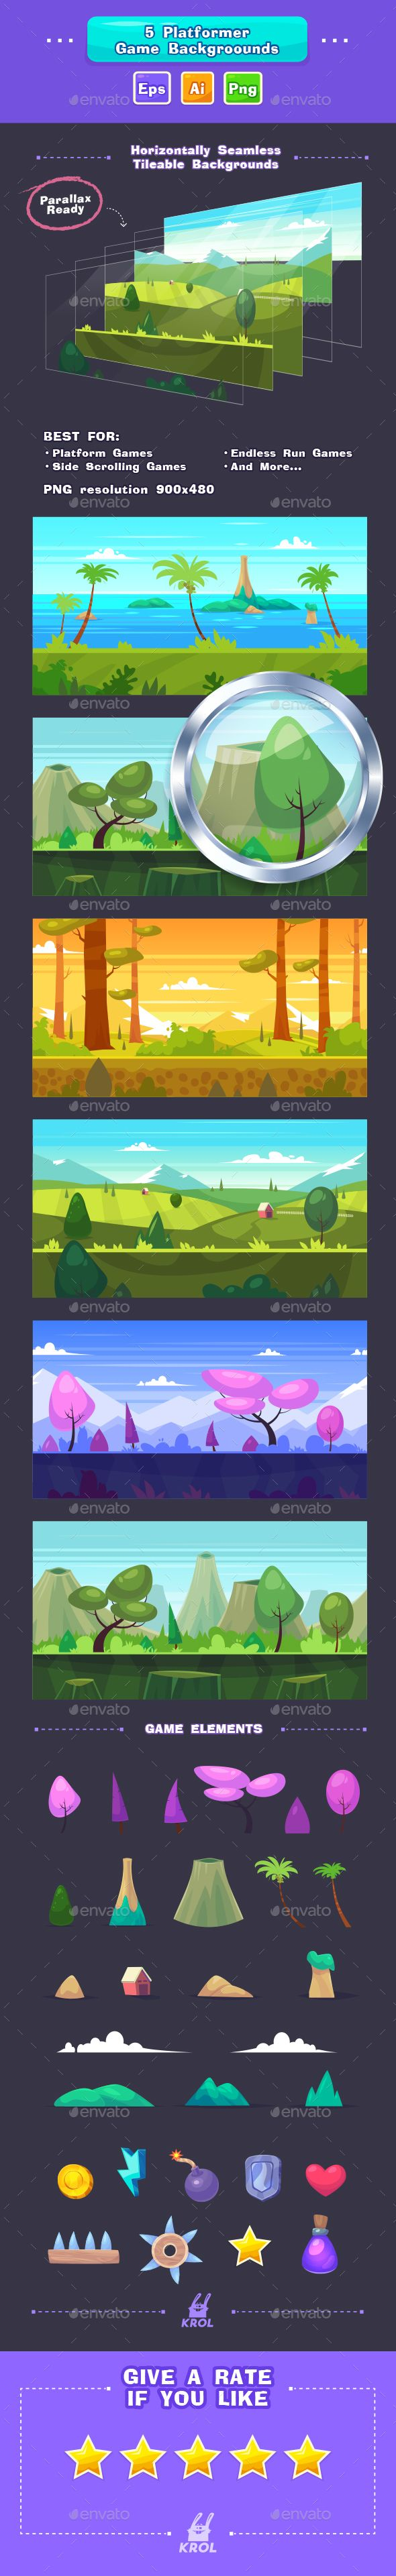 5 Game Seamless Backgrounds — Vector EPS #horizontal #loop • Available here → https://graphicriver.net/item/5-game-seamless-backgrounds/17329086?ref=pxcr